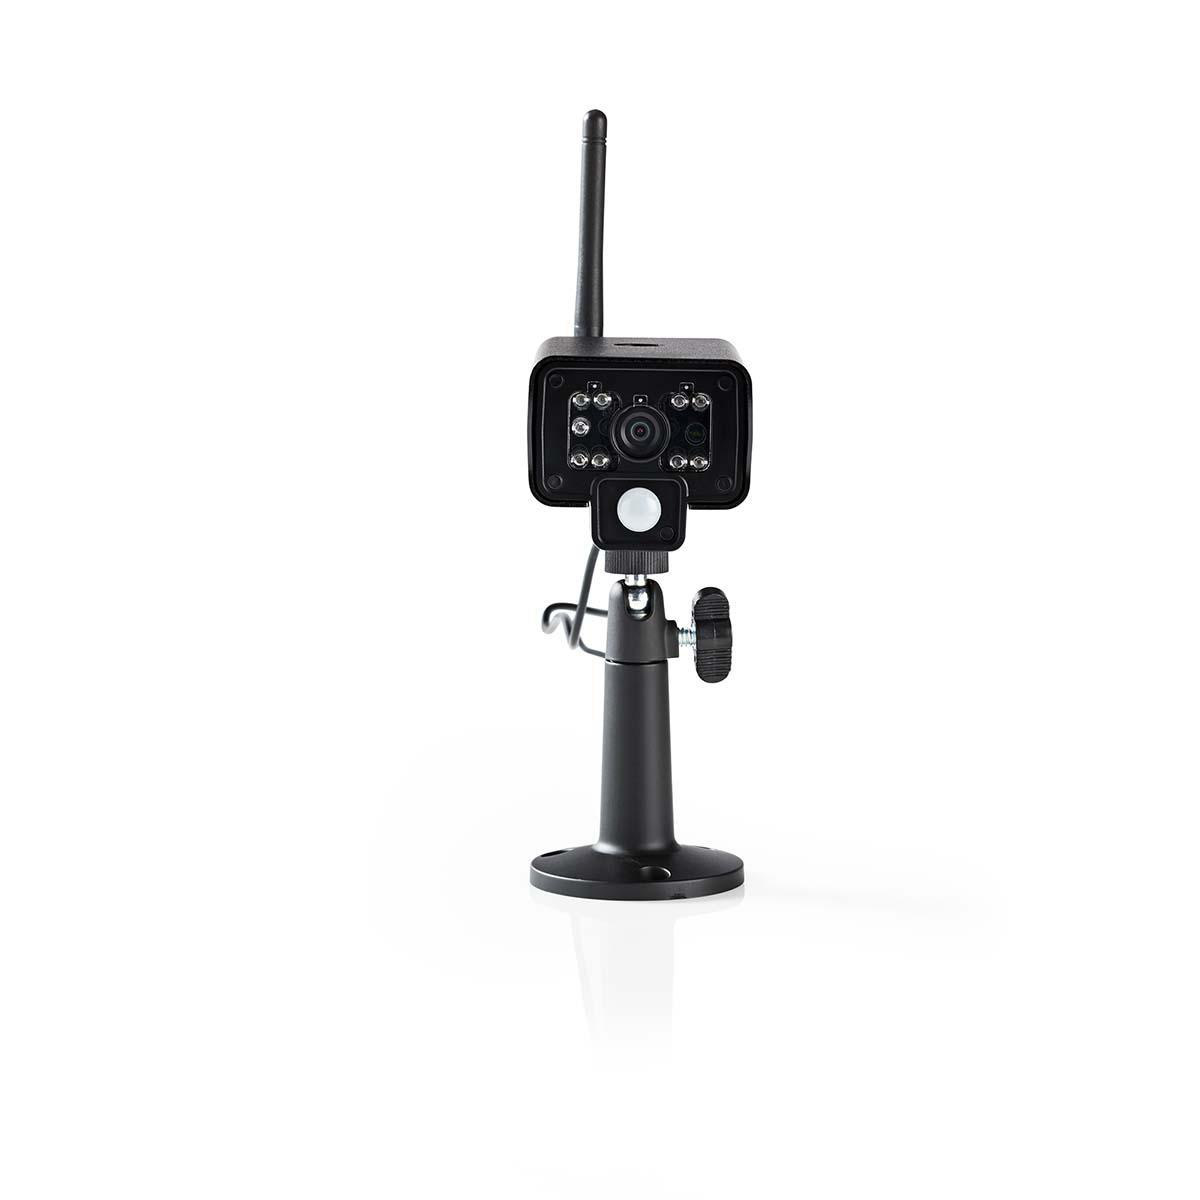 Fotocamera digitale wireless a 2,4 GHz | Supporta set di osservazione CSWL120CBK e CSWL140CBK